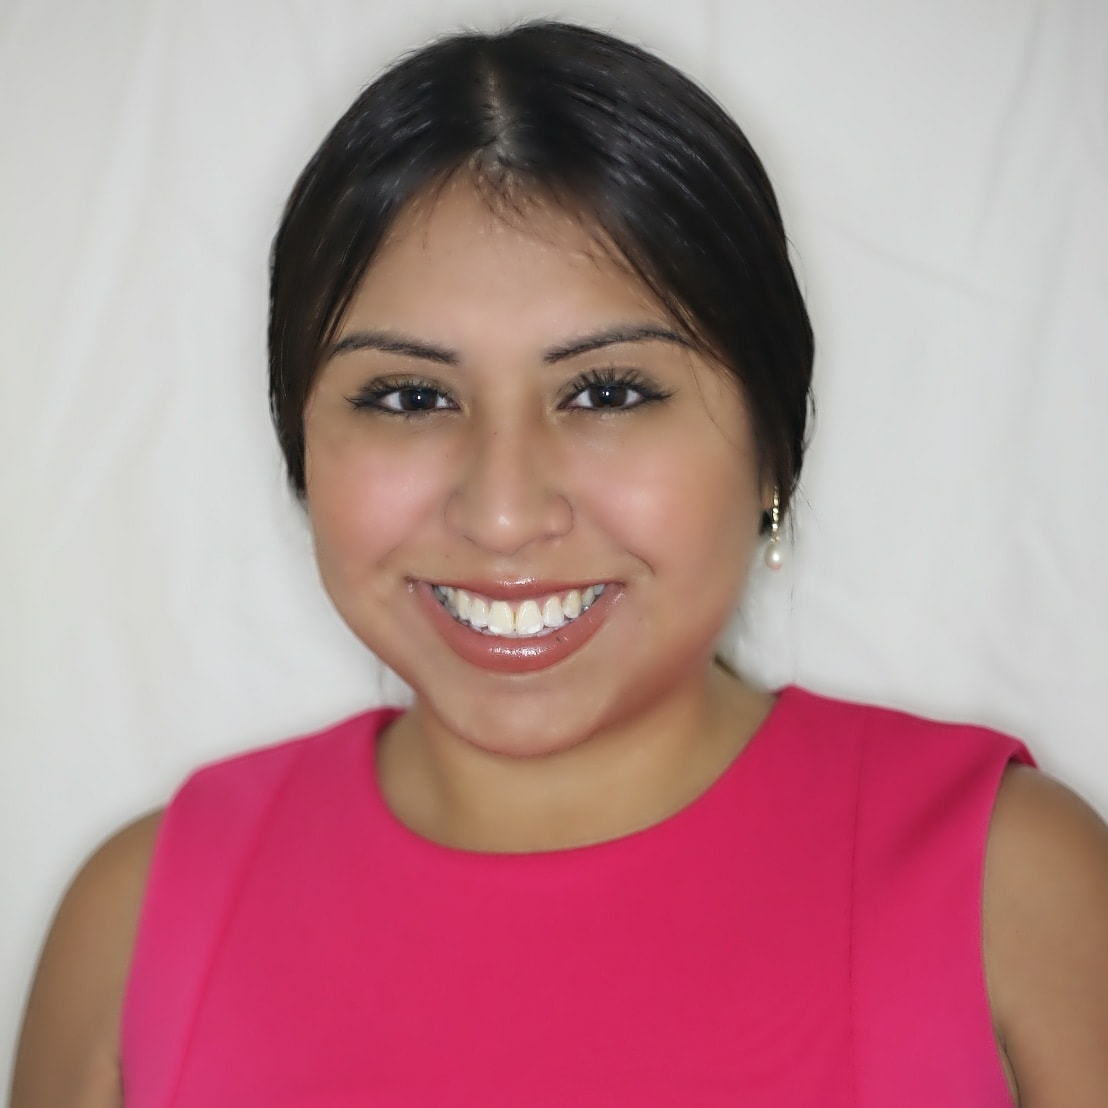 About the writer… - Christine Bolaños is a Salvadoran-American journalist based in Texas who writes about social justice, women's empowerment and Latino issues for numerous national media outlets.